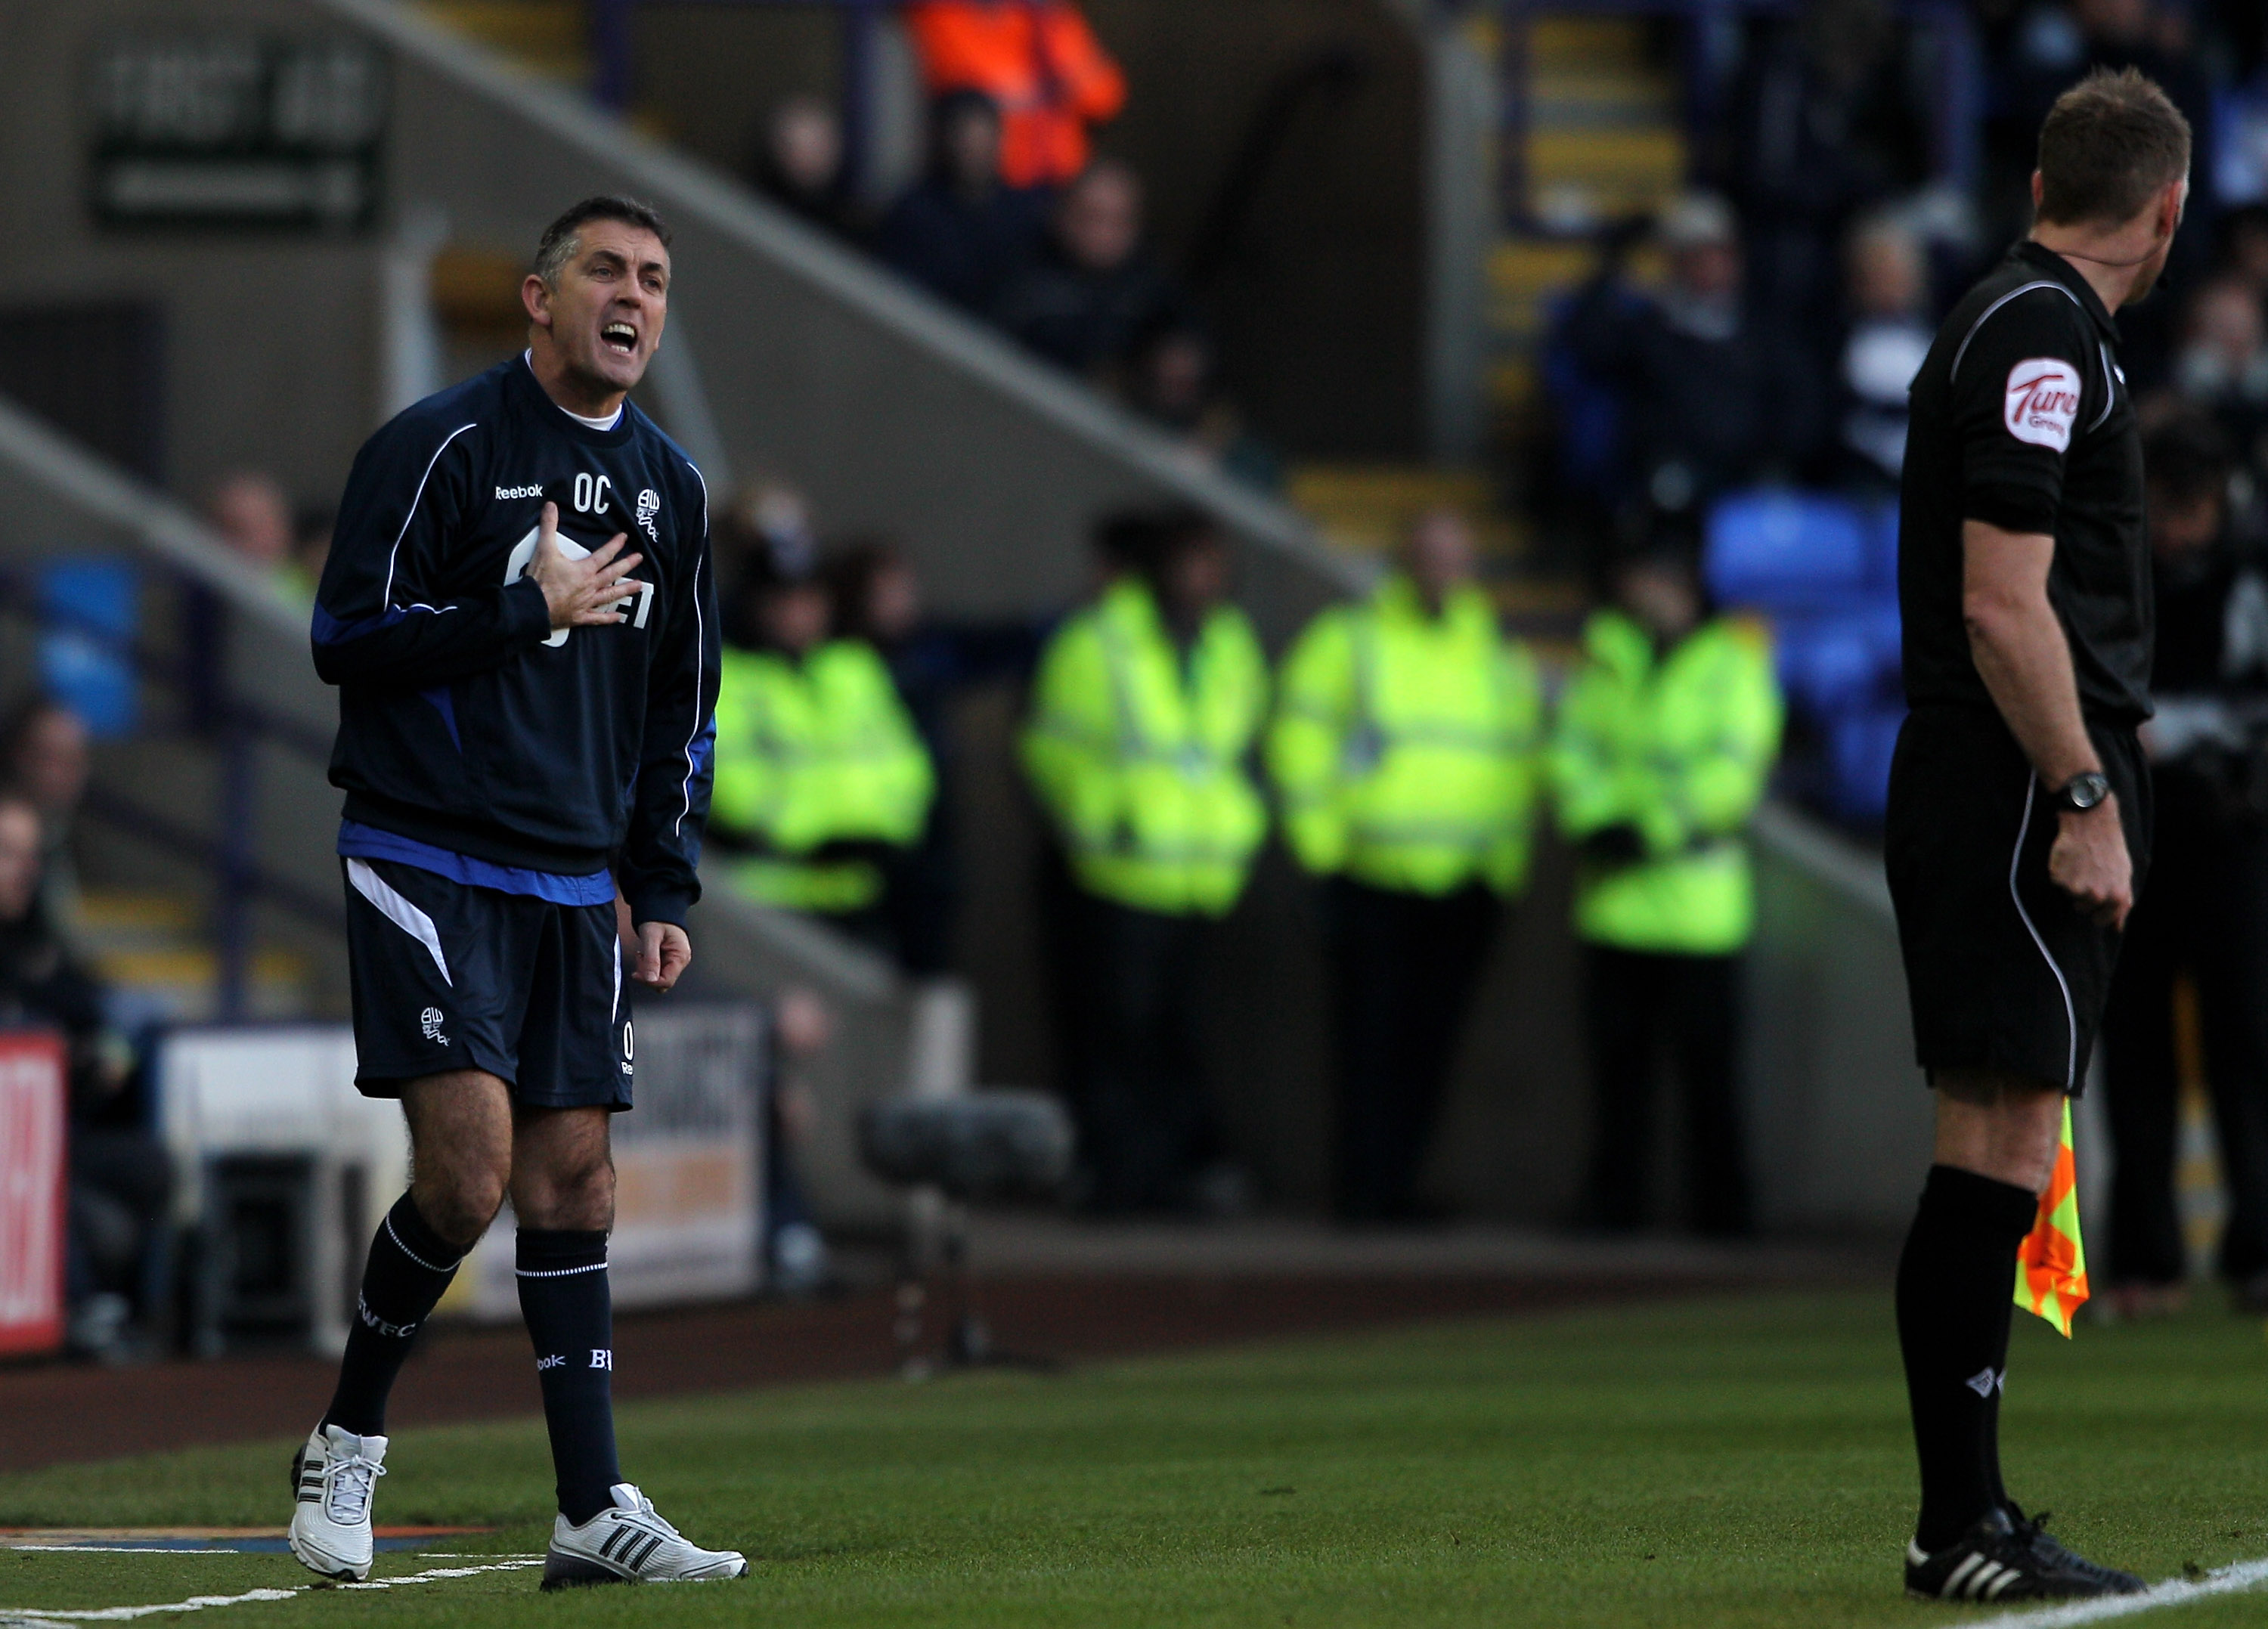 BOLTON, ENGLAND - DECEMBER 12:  Bolton Wanderers Manager Owen Coyle makes a point to the Assistant Referee during the Barclays Premier League match between Bolton Wanderers and Blackburn Rovers at the Reebok Stadium on December 12, 2010 in Bolton, England